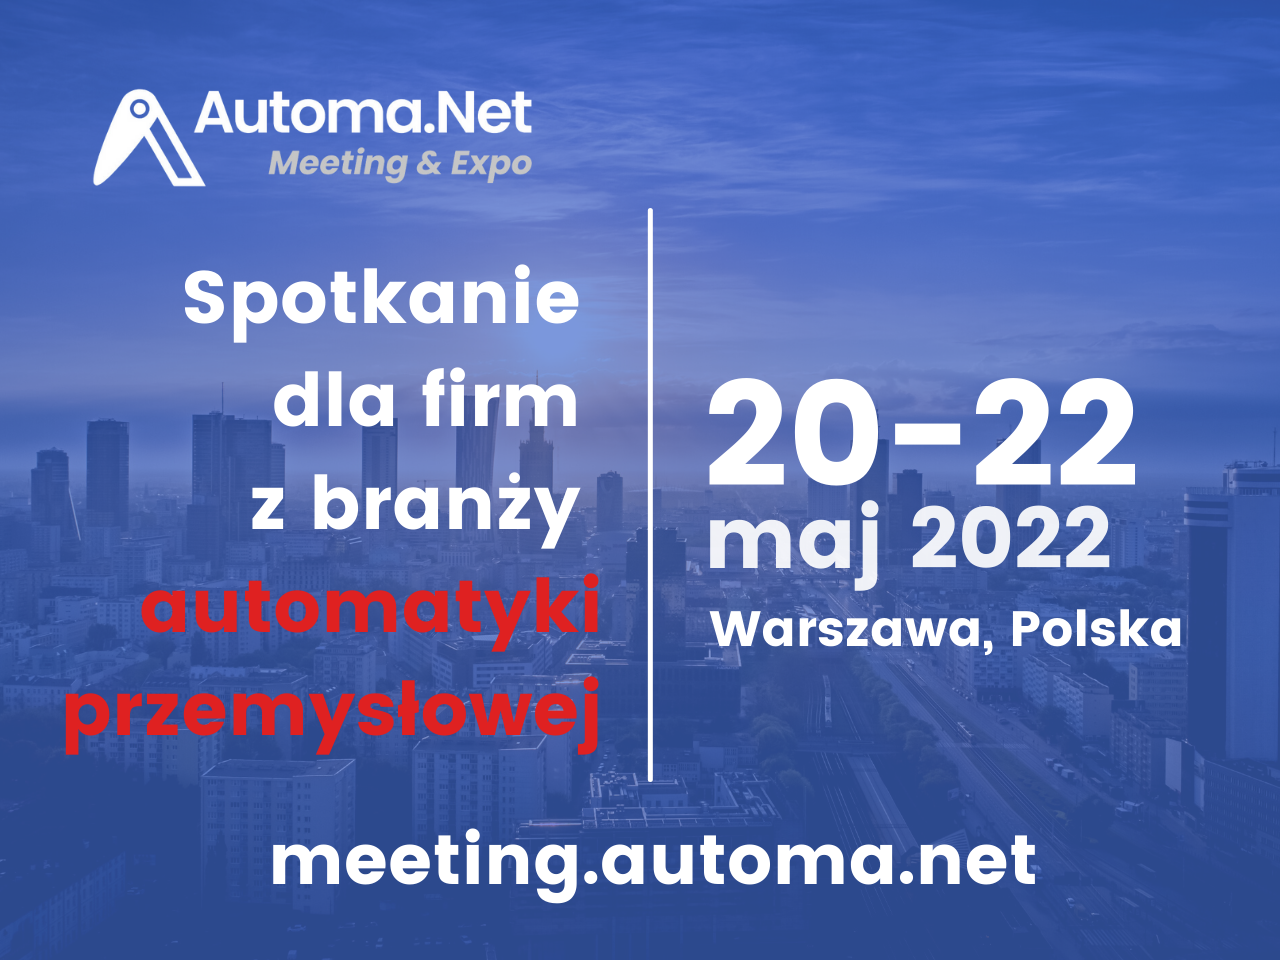 automanet meeting